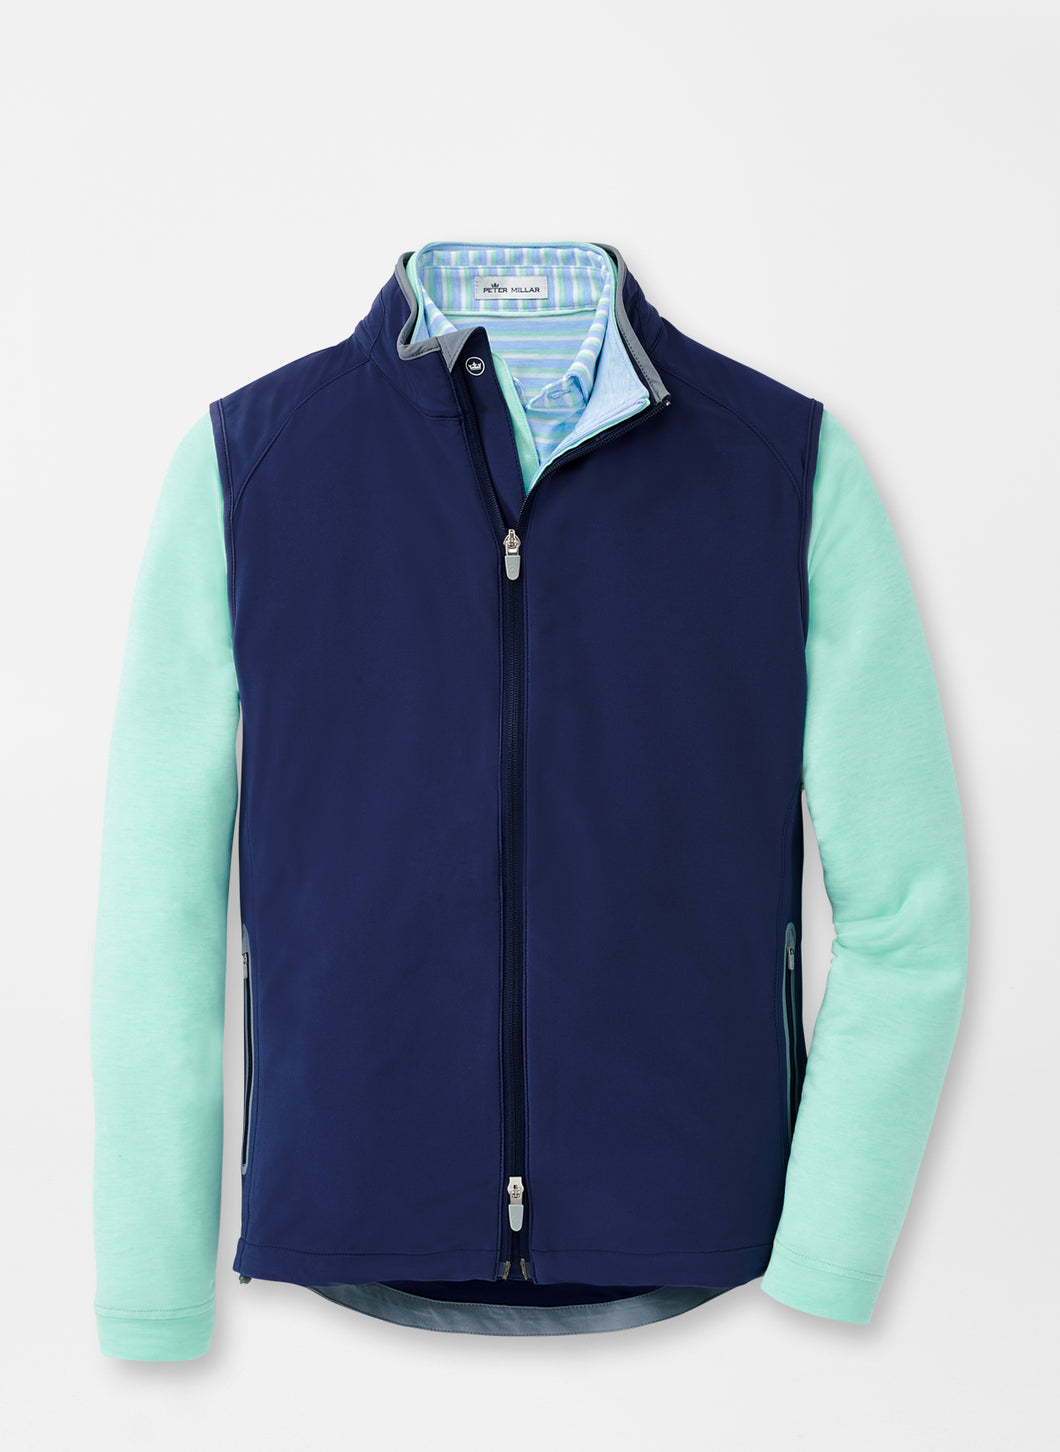 Peter Millar Zephyr Performance Vest in Navy